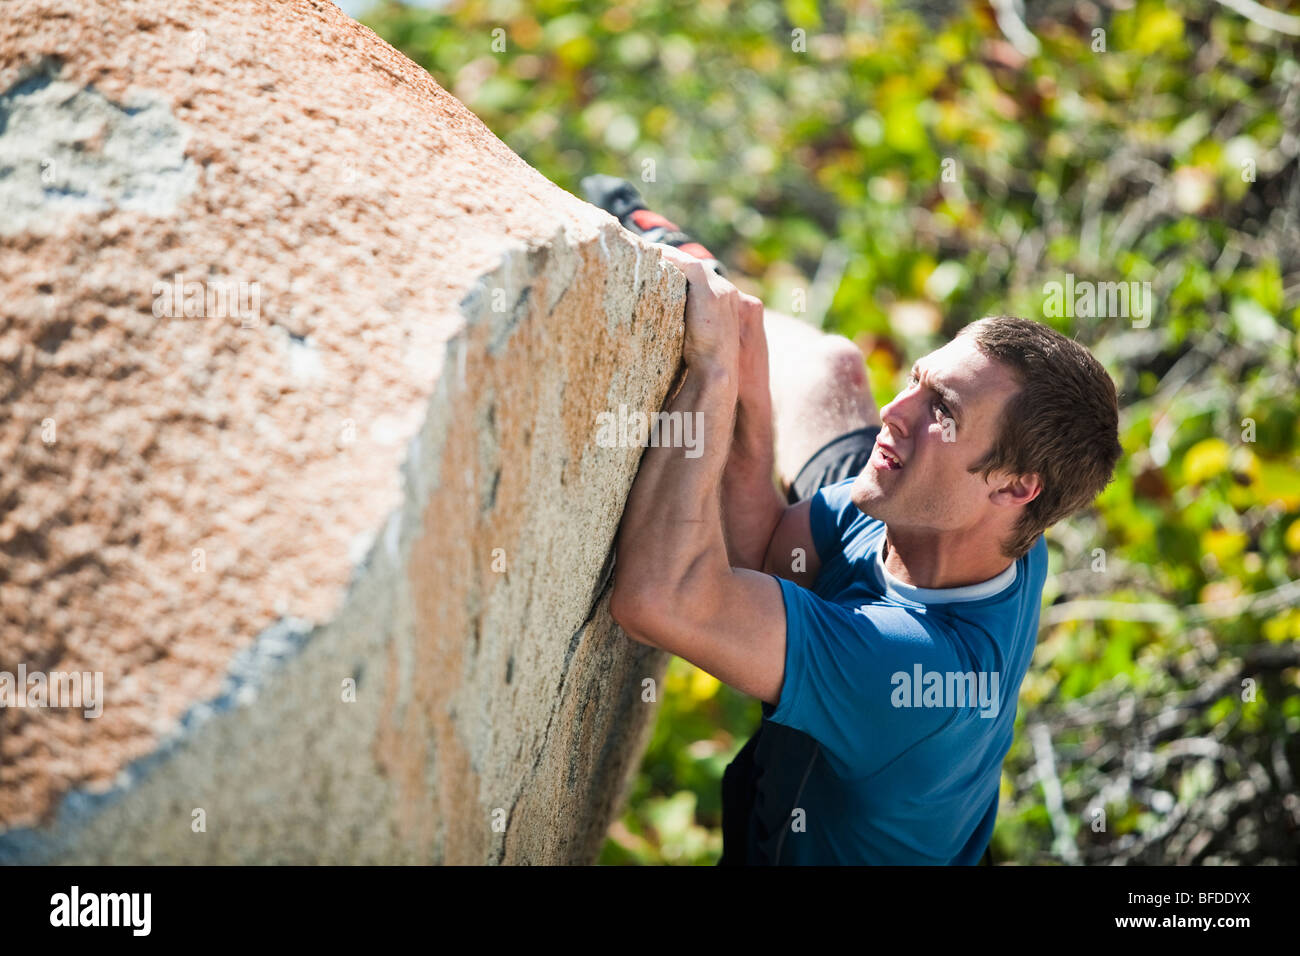 A climber traverses with his hands and a high heel hook on a granite boulder. - Stock Image